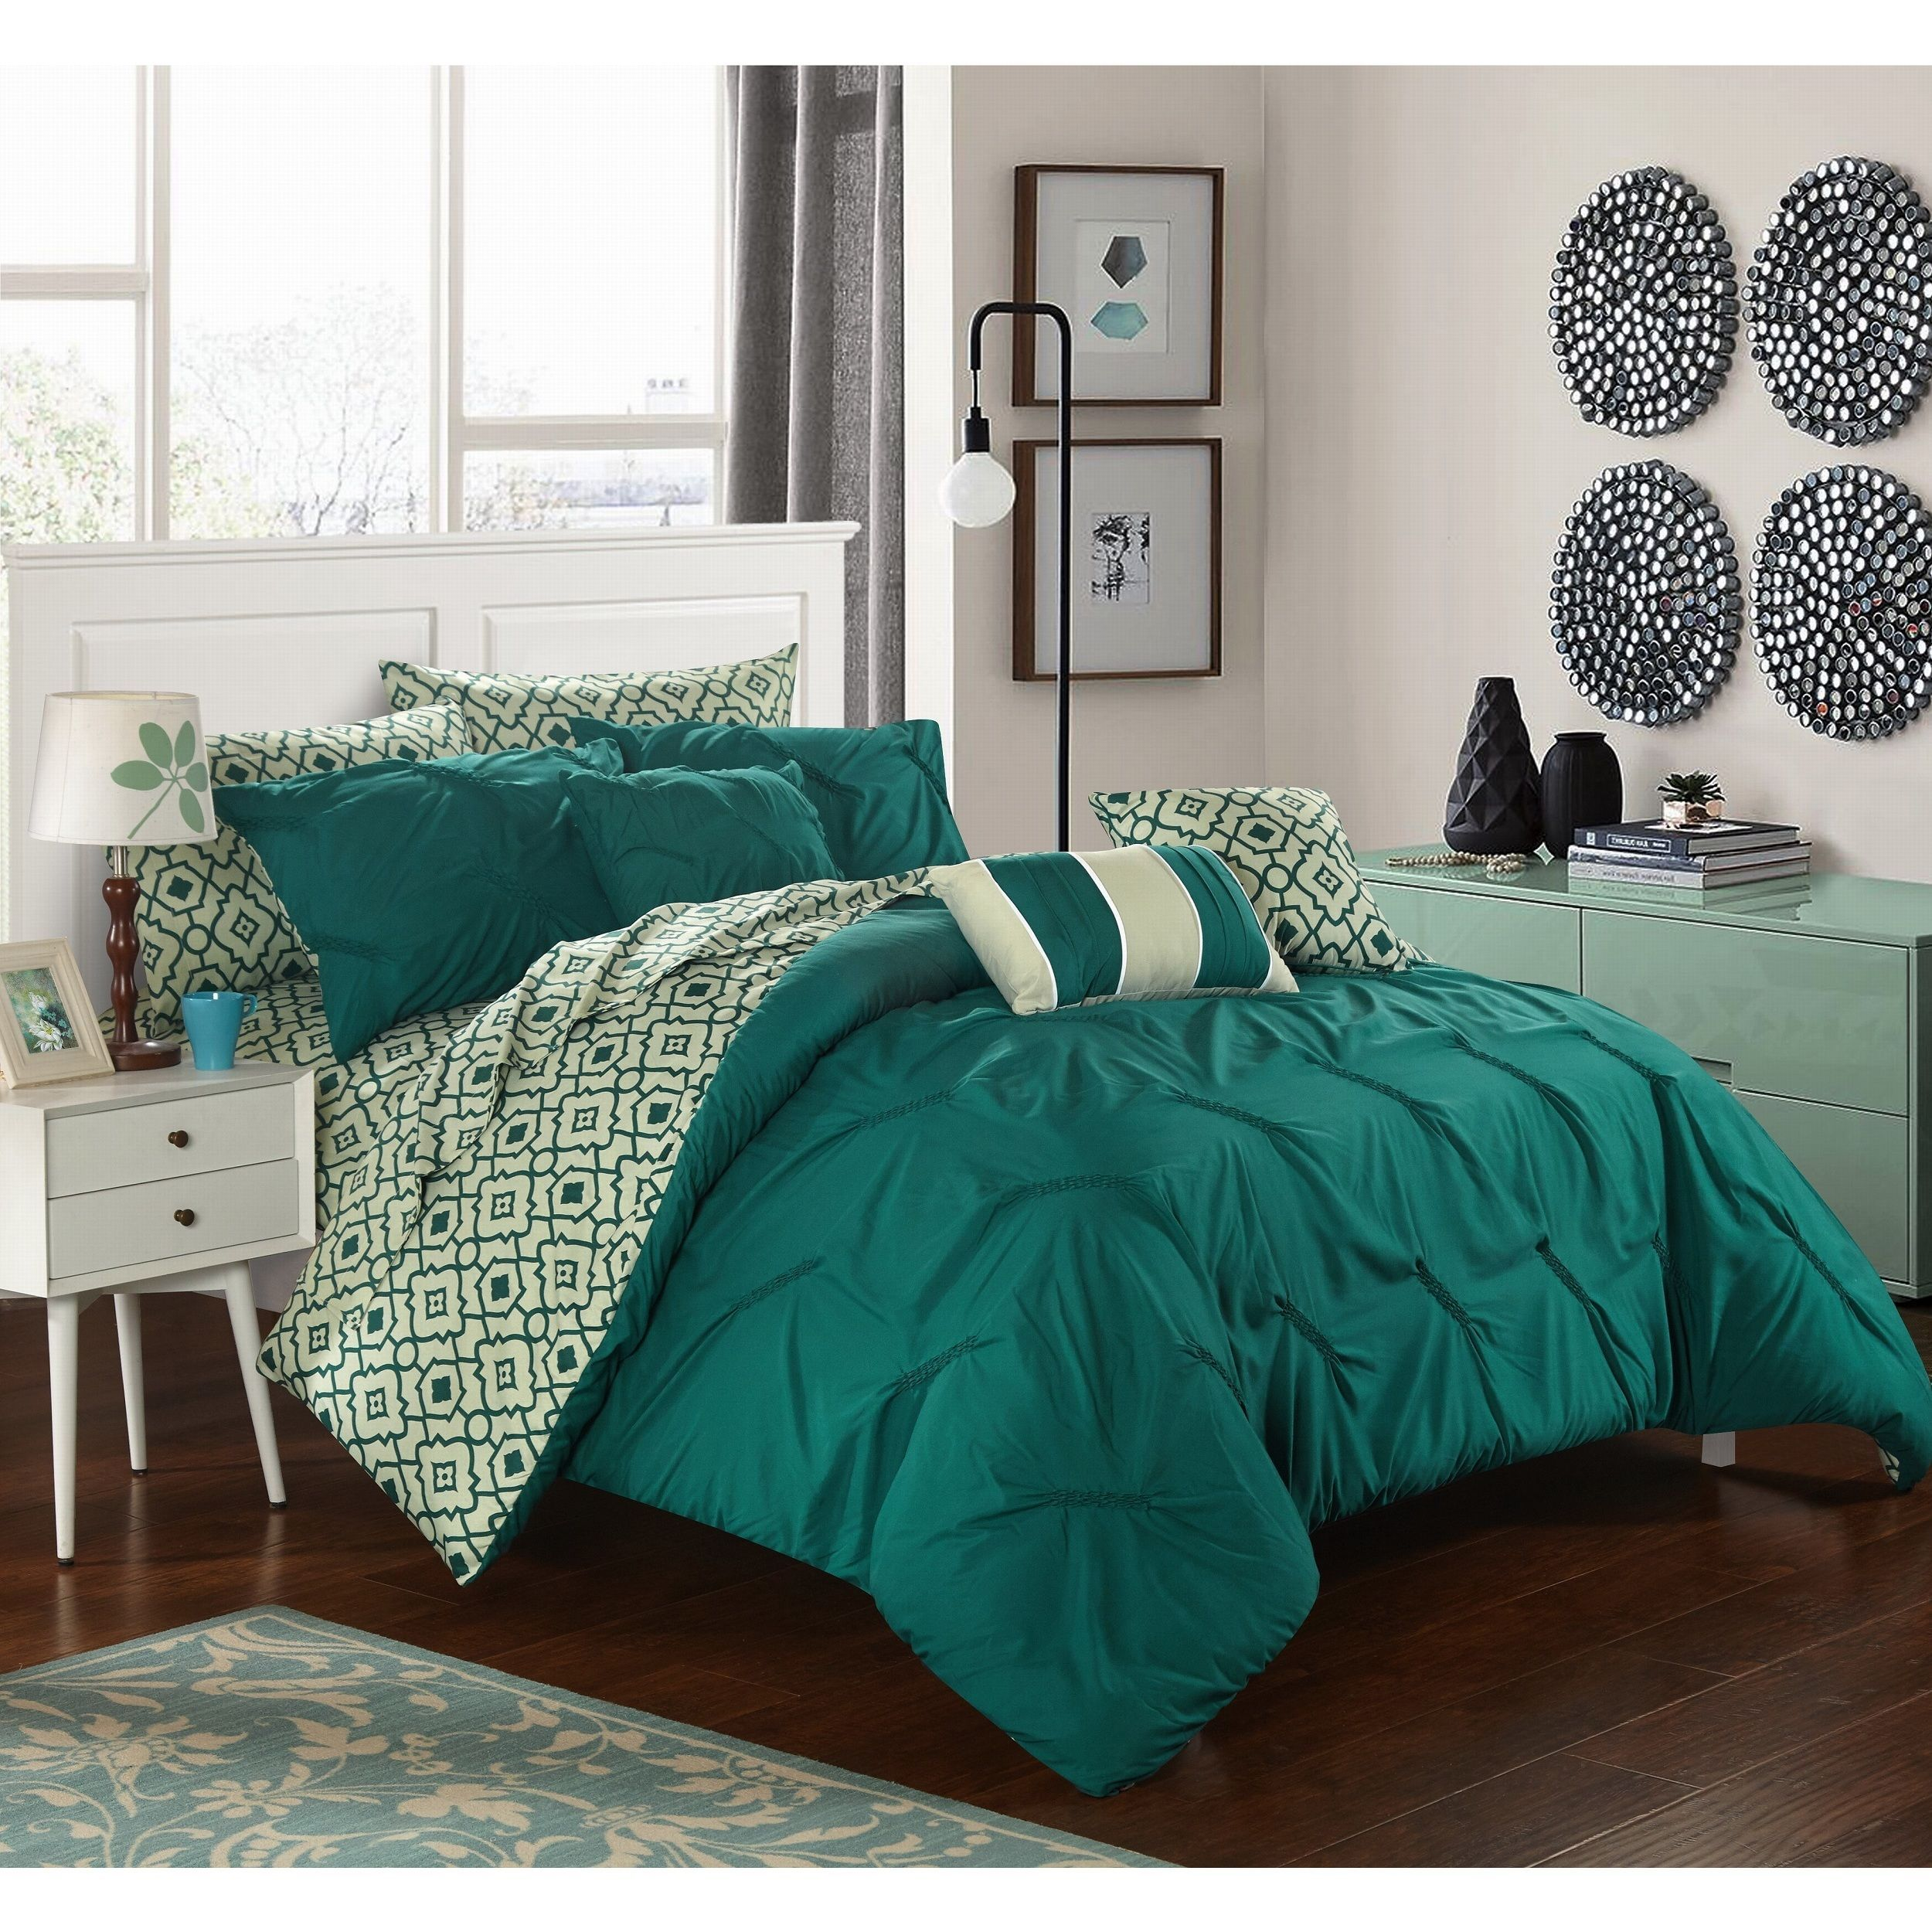 reviews queen bedding green comforter madison pcr bed best set customer helpful in rated sets aqua amherst size park bag a